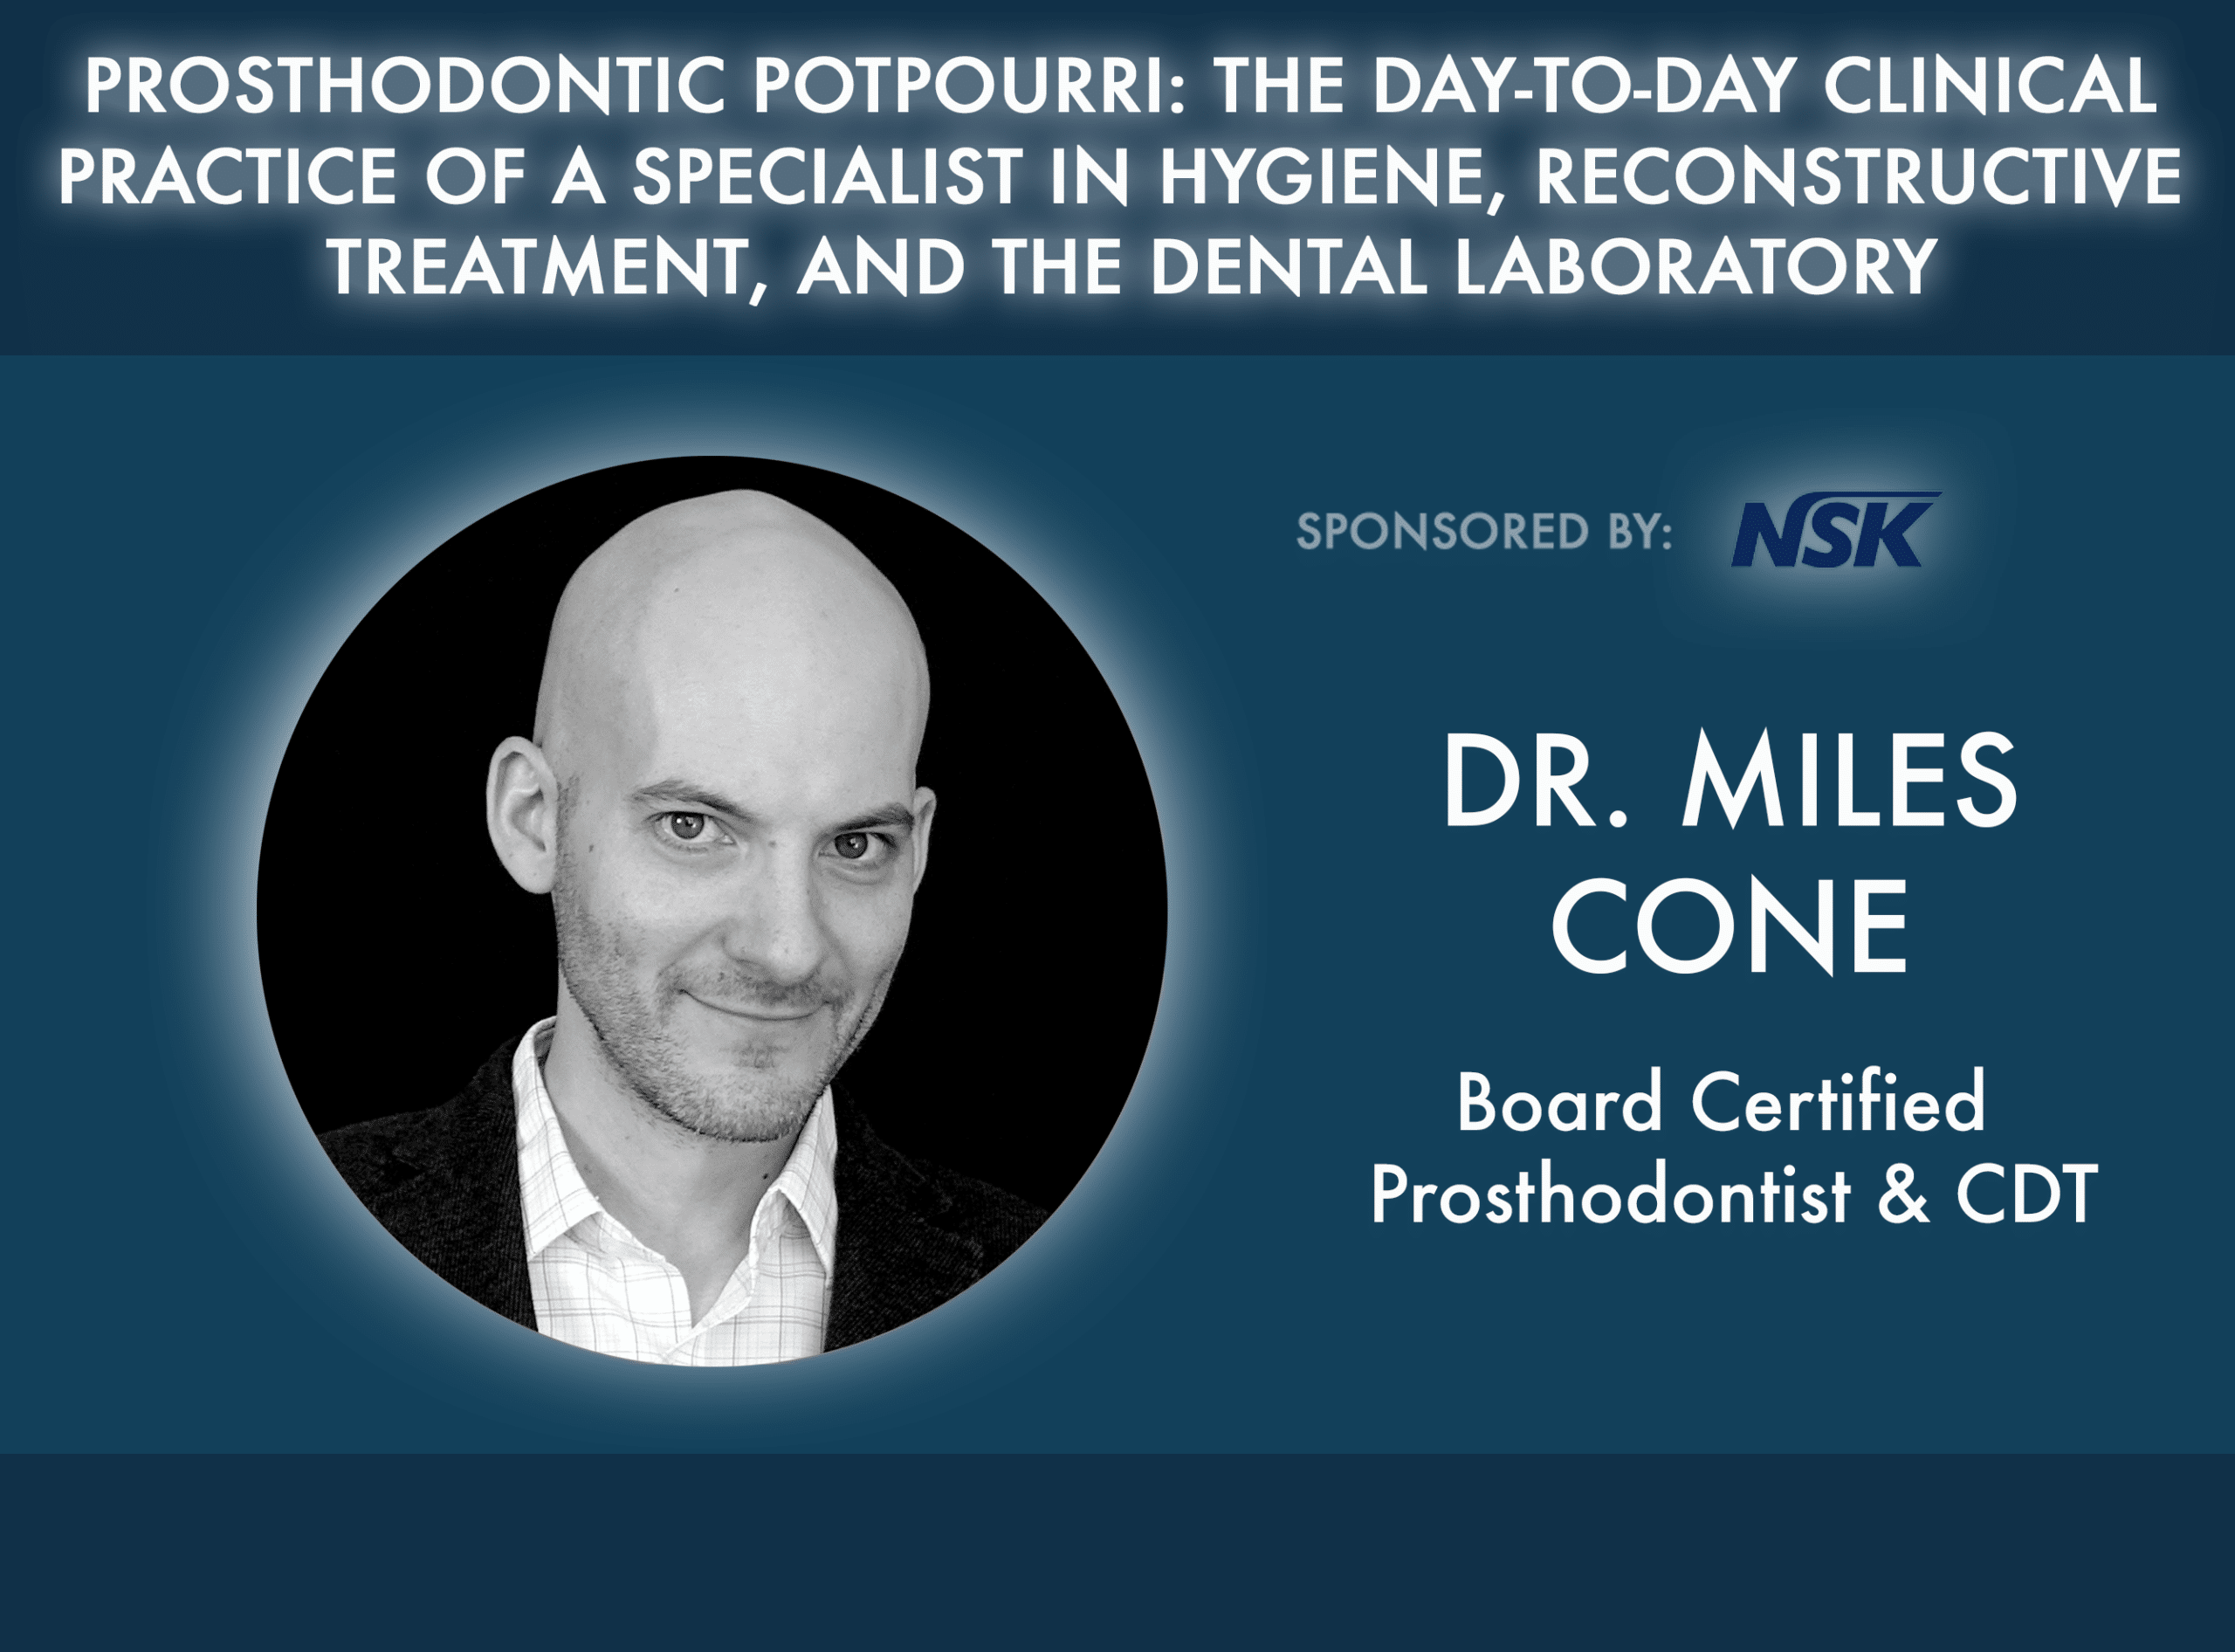 Prosthodontic Potpourri: The Day-to-Day Clinical Practice of a Specialist in Hygiene, Reconstructive Treatment, and the Dental Laboratory